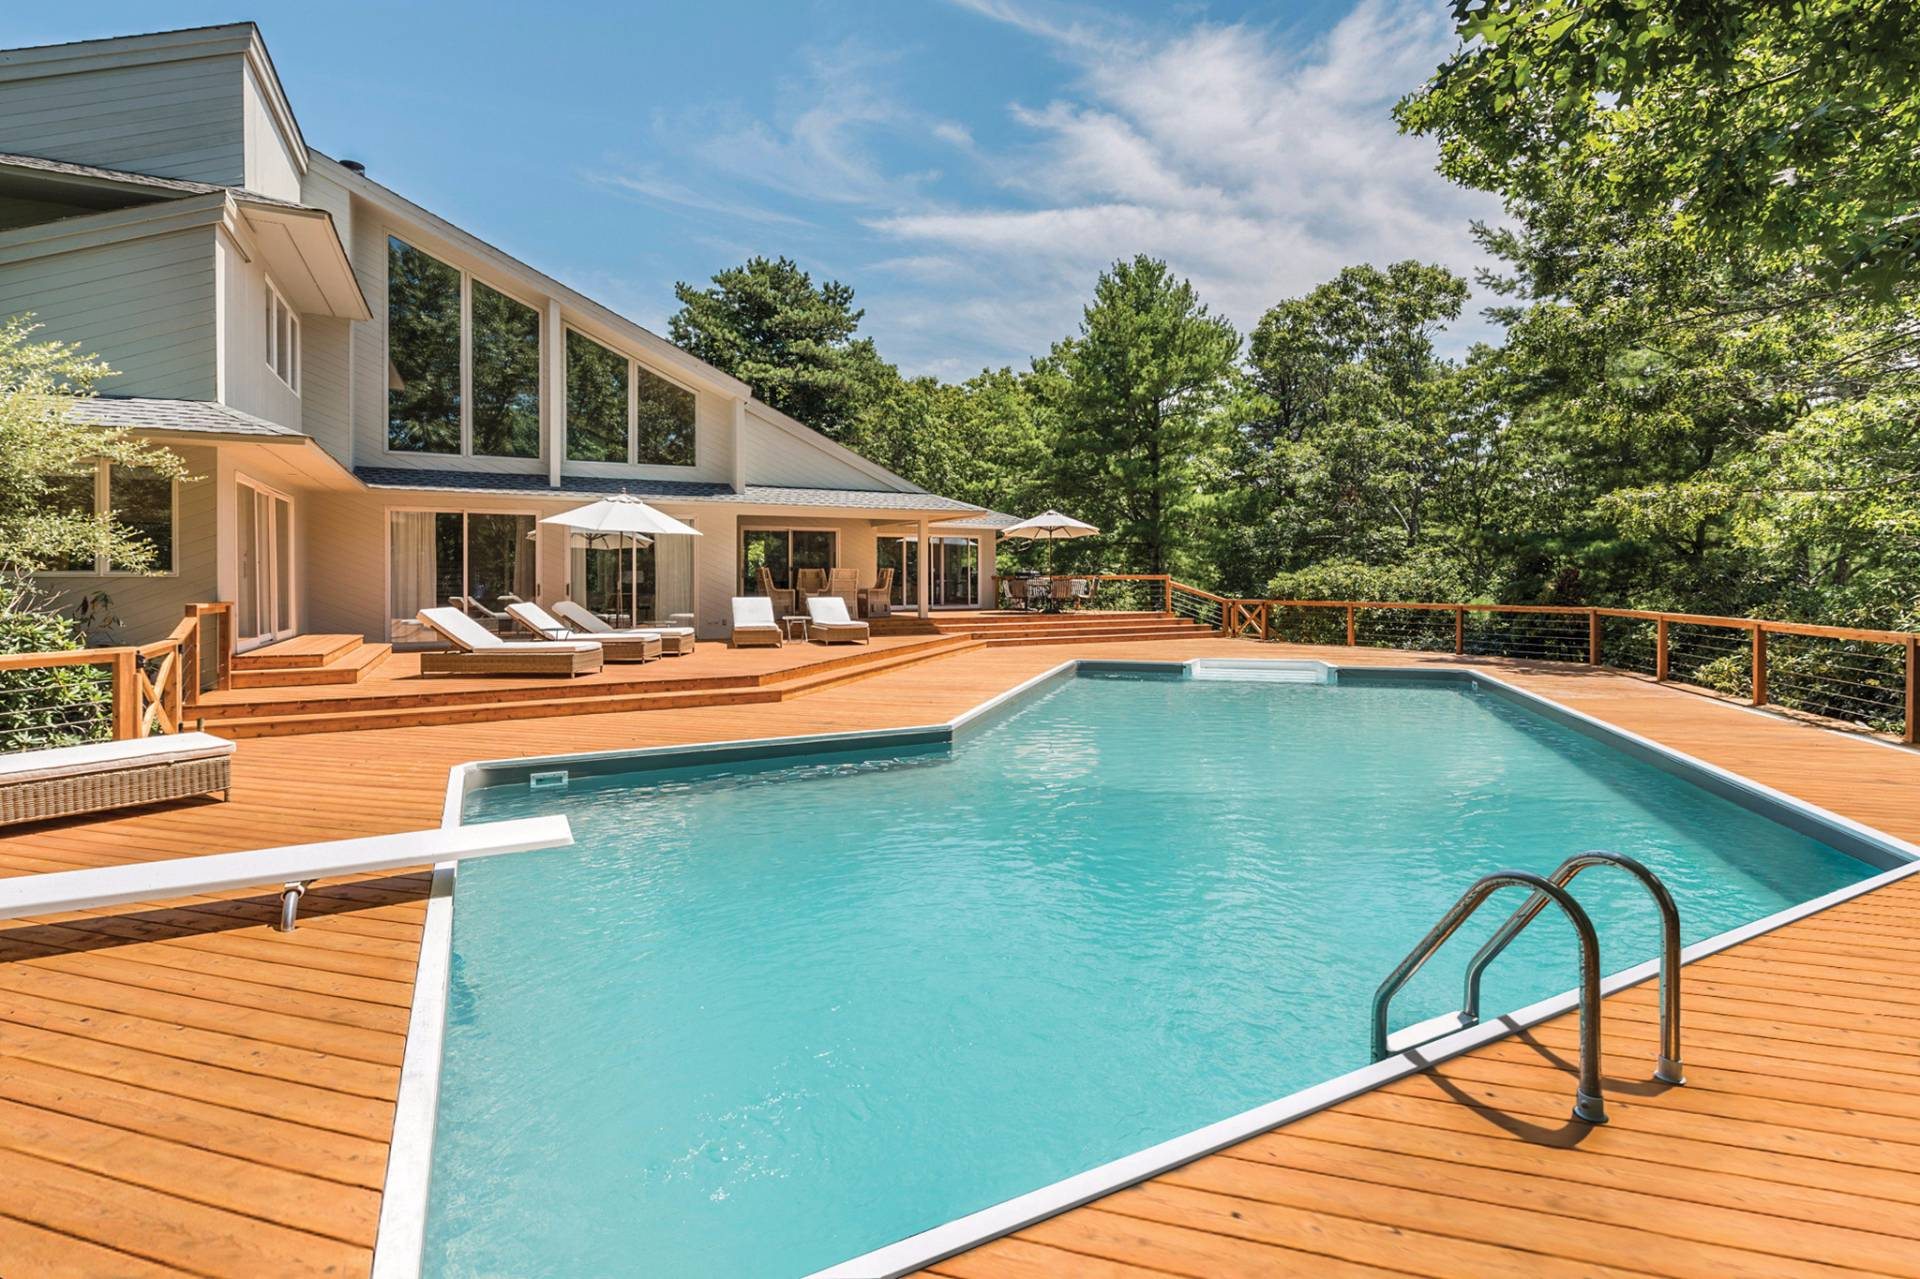 Single Family Home for Sale at Modern Luxury In Water Mill On 4 Acres With Tennis Water Mill, New York